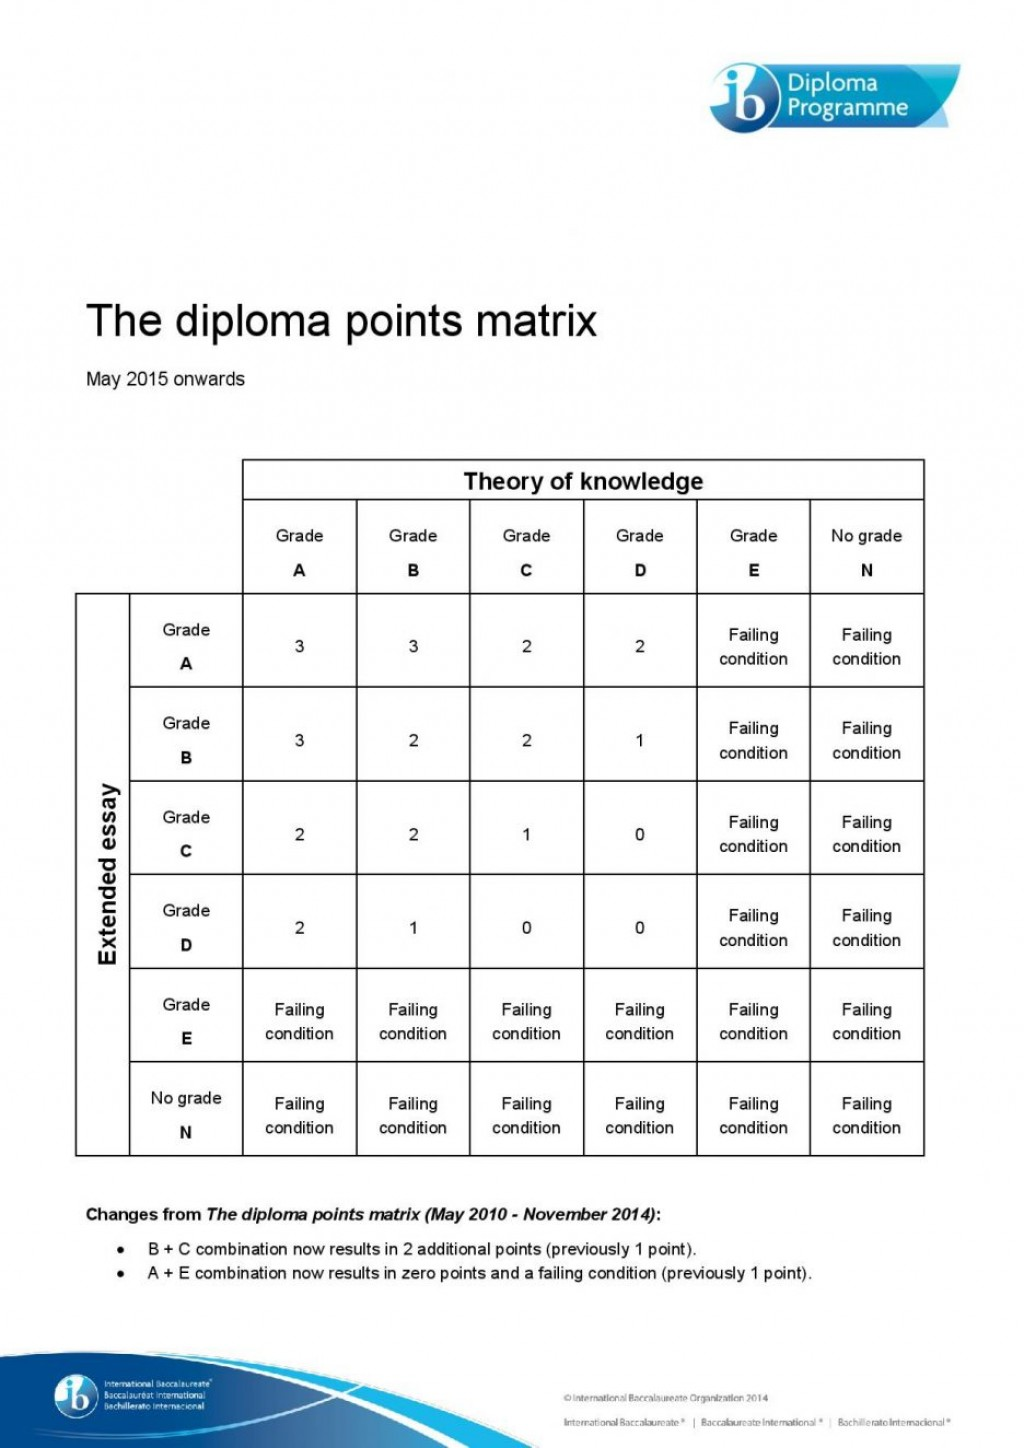 014 Essay Example Tok Writers The Diploma Points Matrix Onwards Page Ib Theory Of Knowledge Questions Rubric Word Limit Titles Examples Topics Stupendous Extended 2019 2016 Large